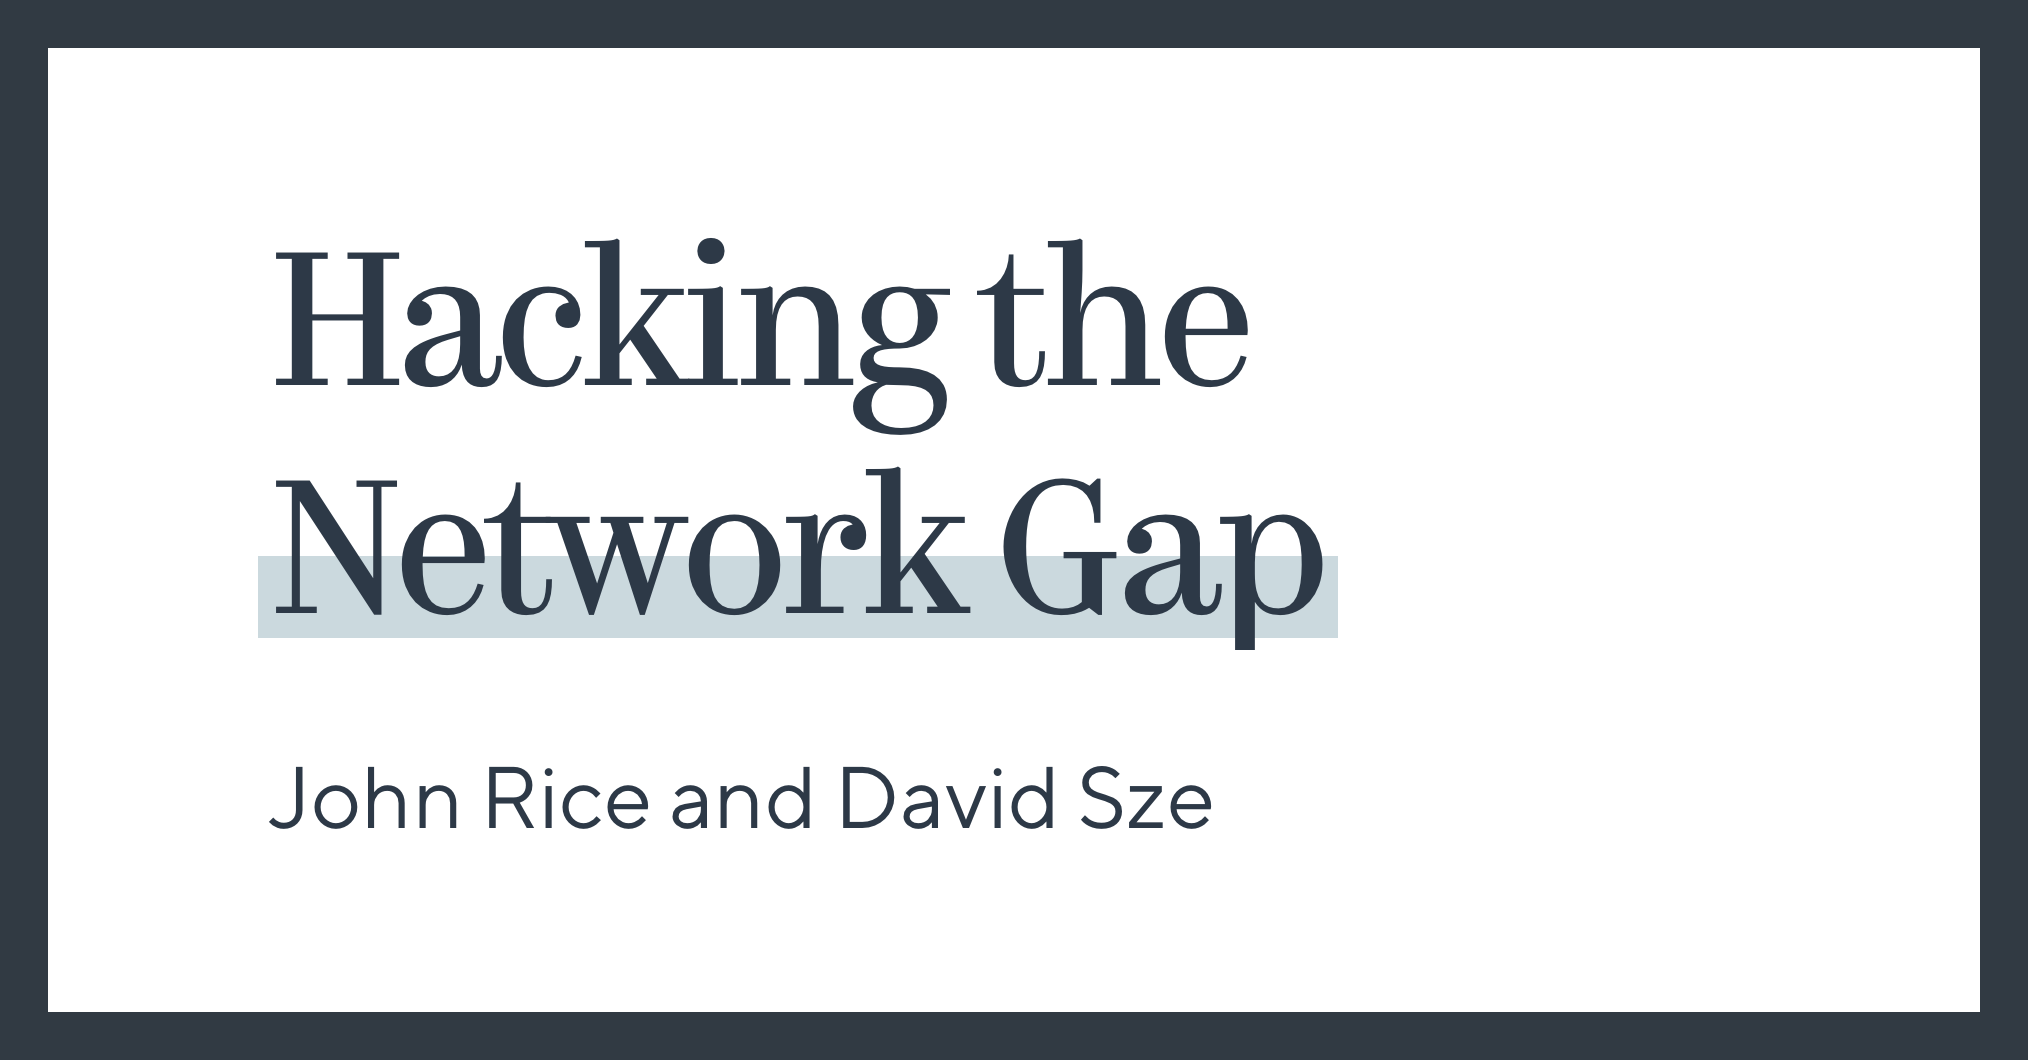 Hacking the Network Gap